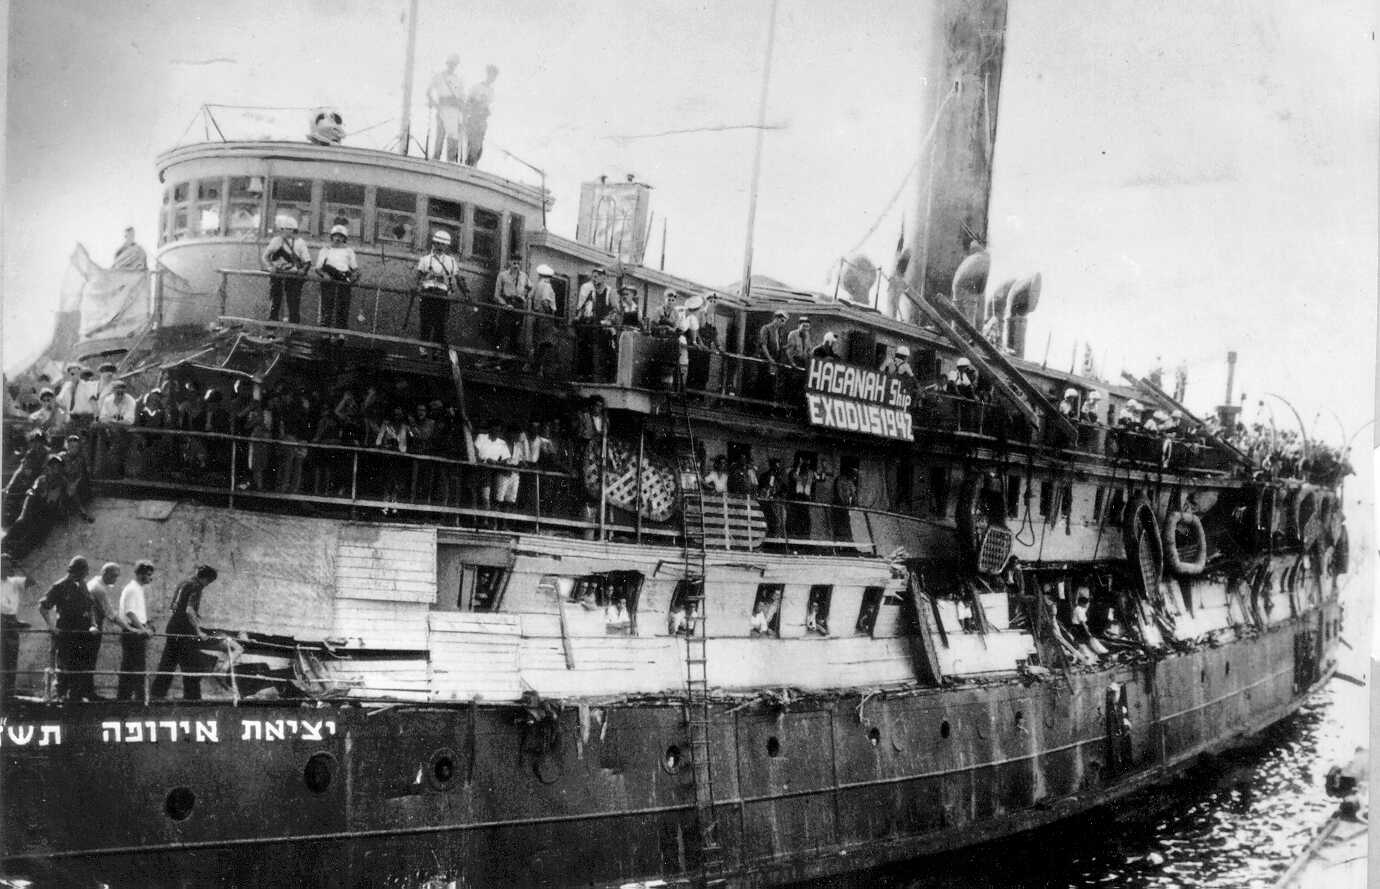 The famous Exodus ship, laden with Jewish refugees, and the subject of legend and inevitable comparisons with the current tragedy.